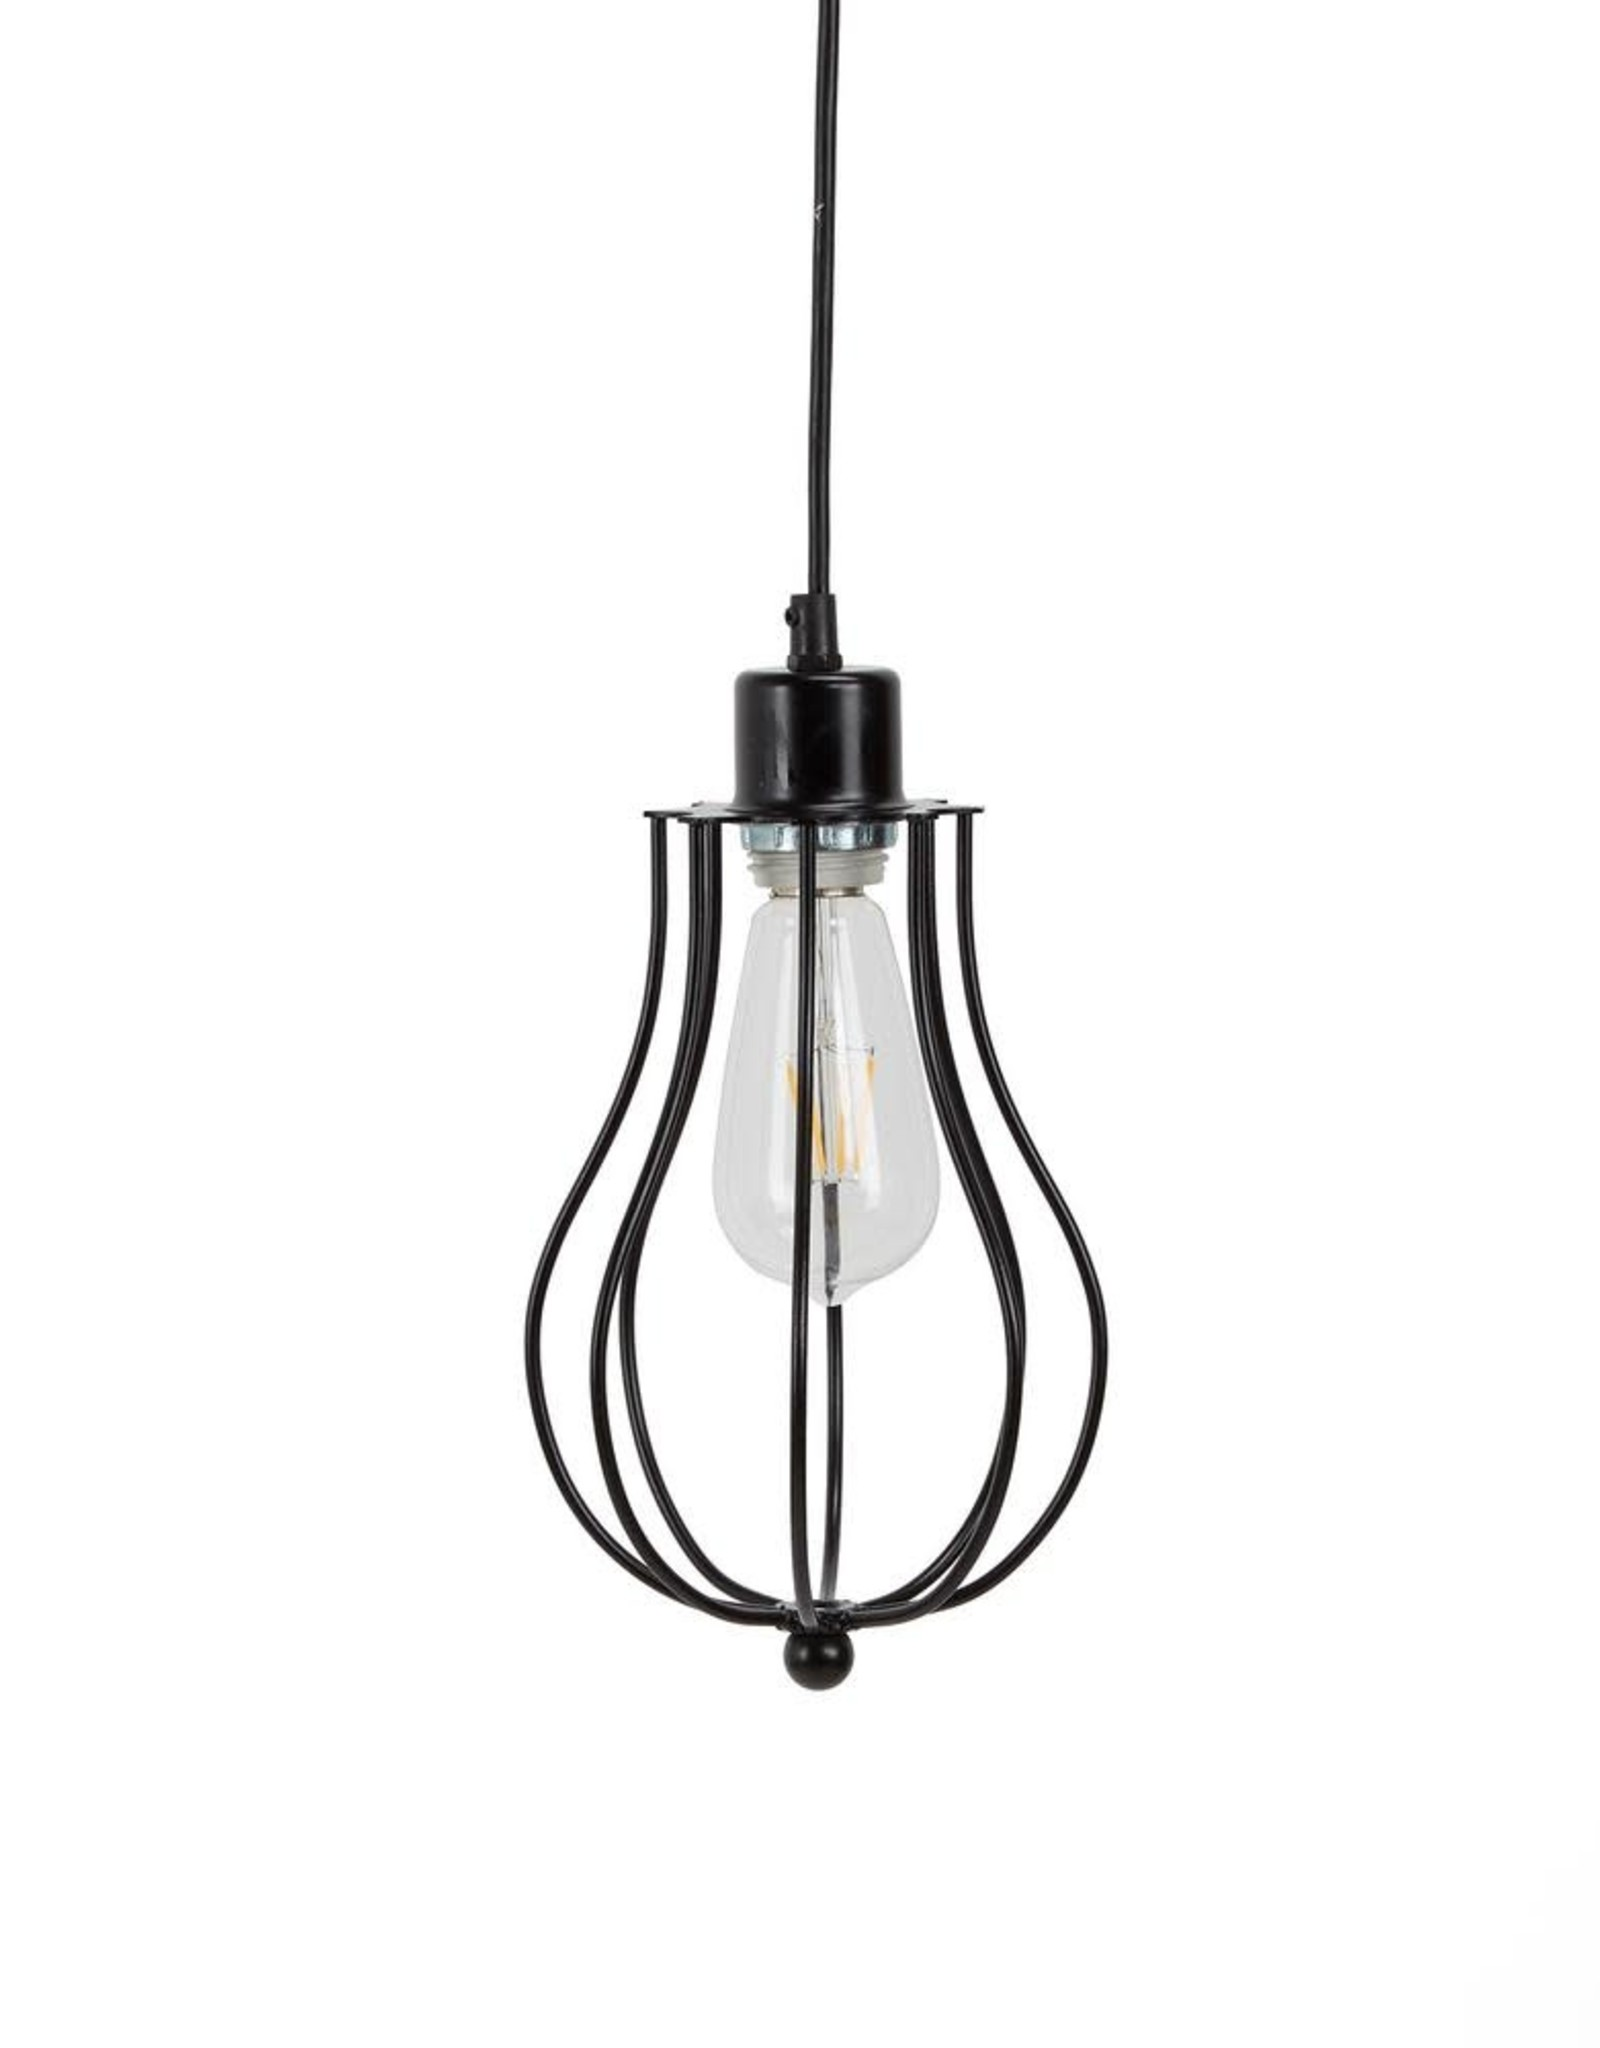 Silverwood Furniture Reimagined Willa 6-Watt Black Metal Integrated LED Pendant